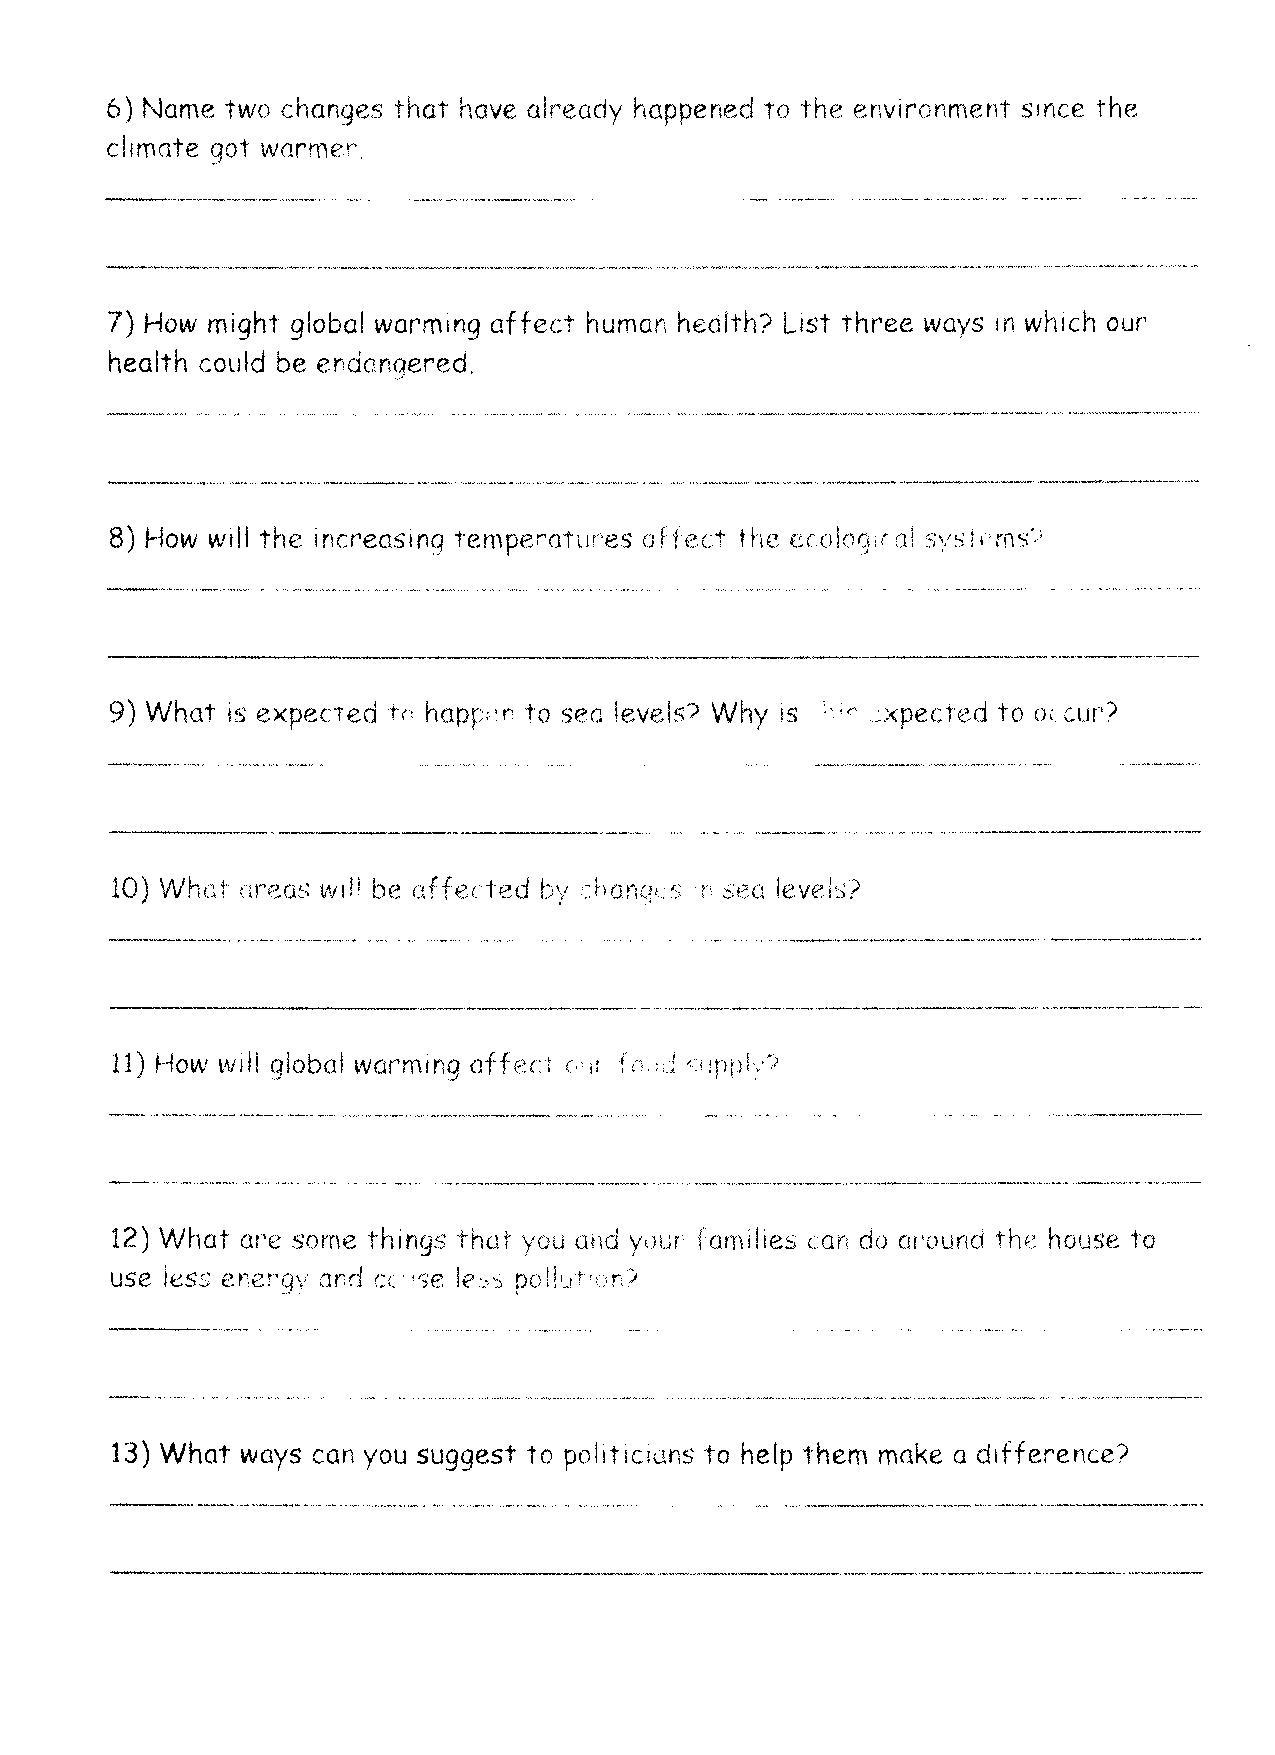 Worksheets Global Warming Worksheets 5d global warming taskcard pg2 uc links activity guides worksheet page 2